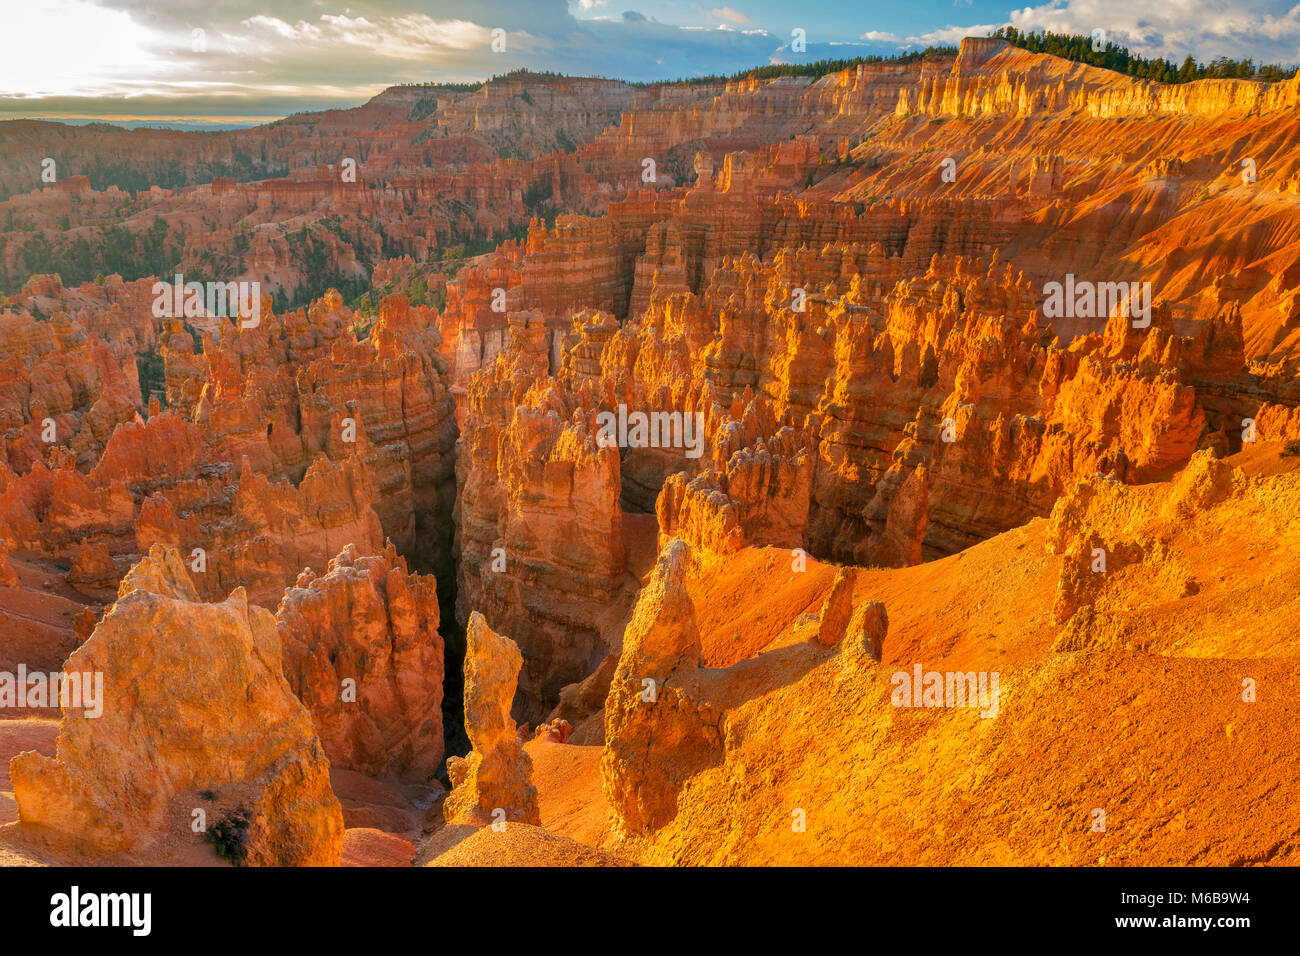 Lever du soleil, Hoodoos, Wall Street, le Parc National de Bryce Canyon, Utah Photo Stock